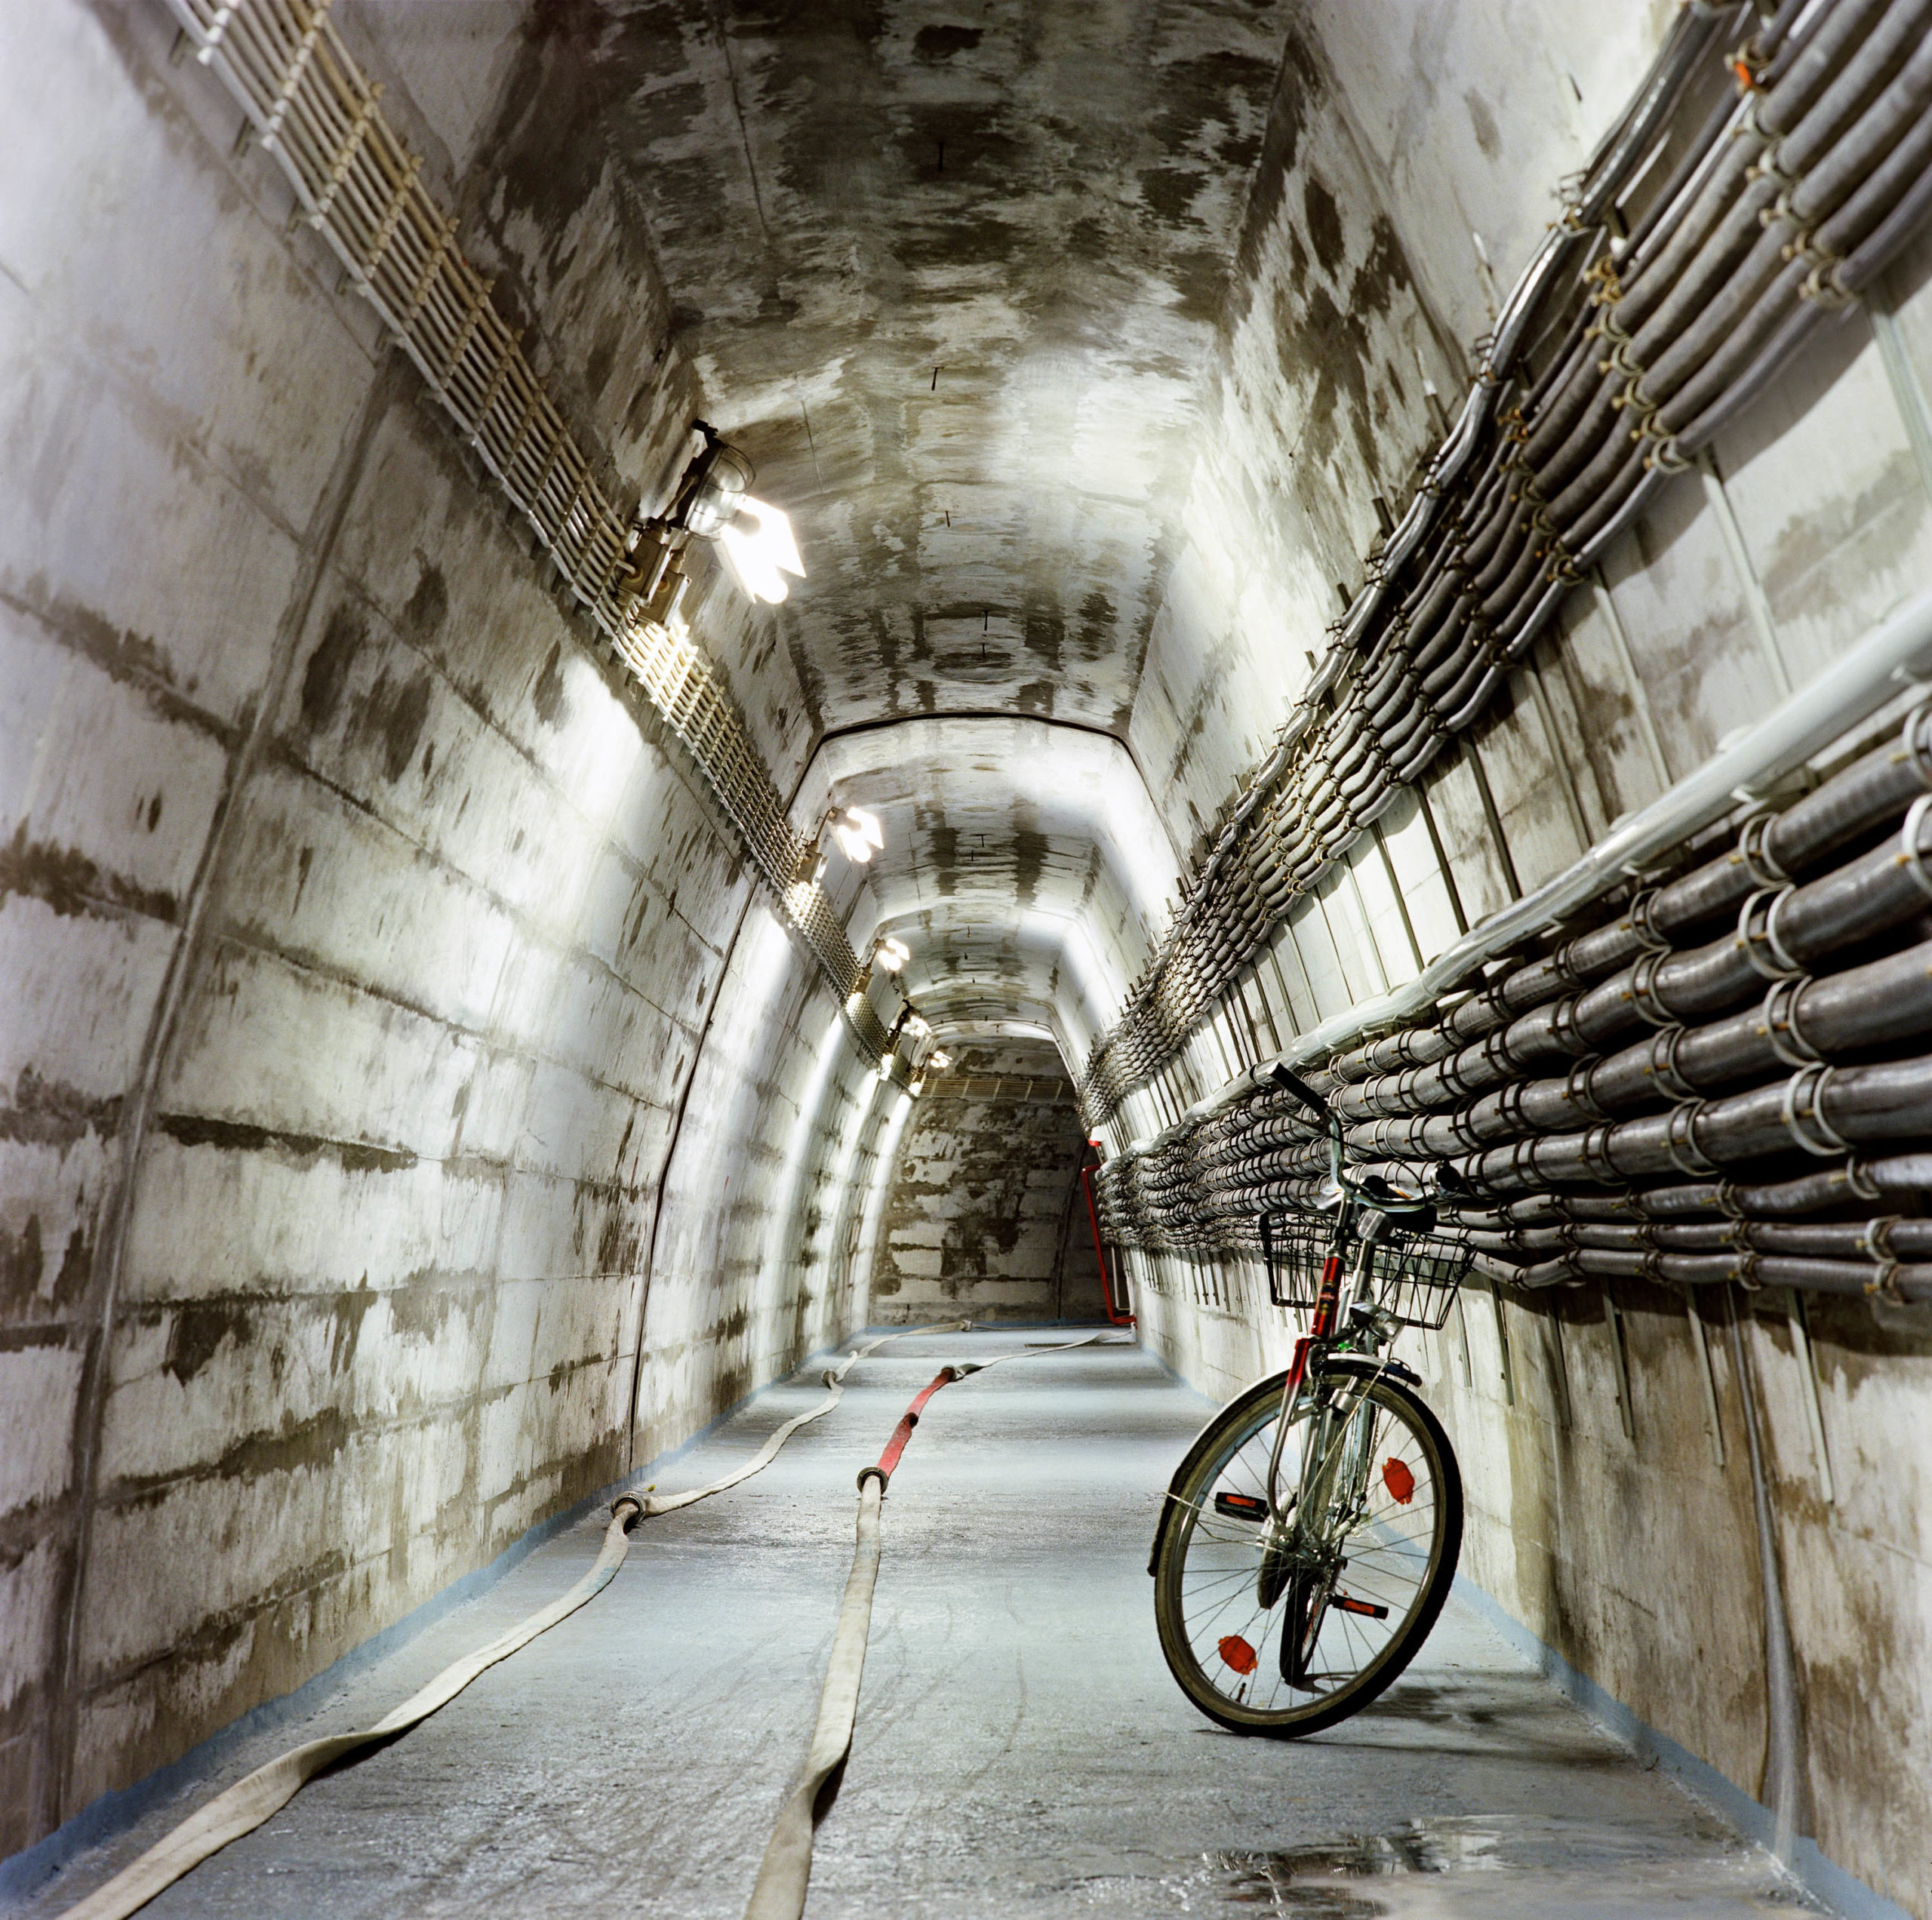 Underground nuclear shelter for the West German Government